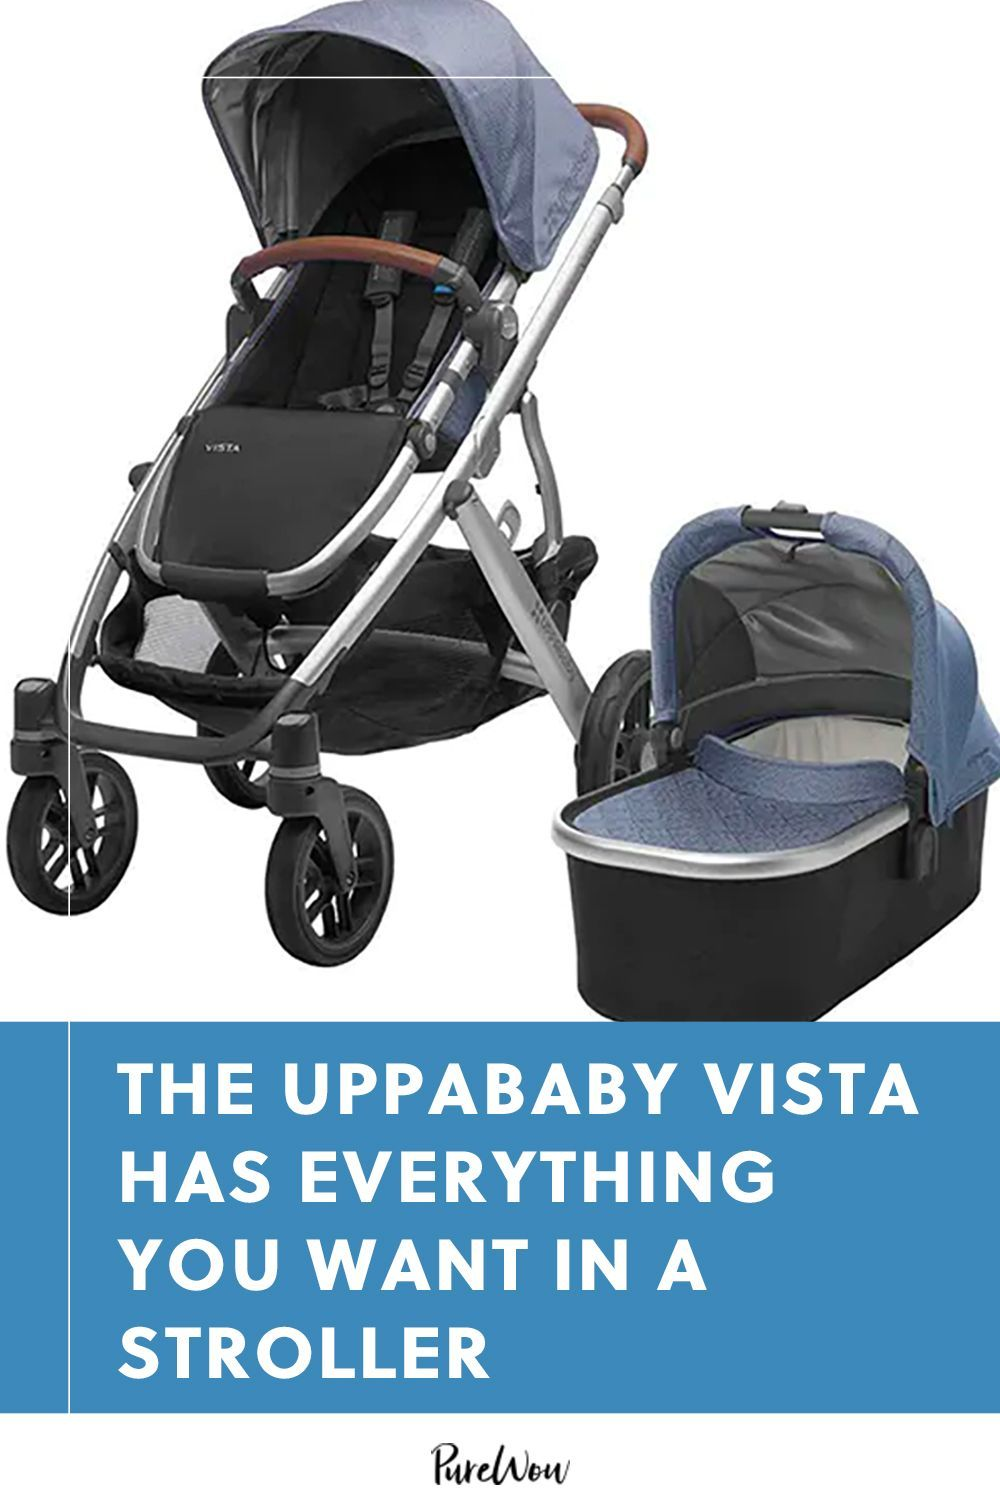 The UPPAbaby VISTA Has Everything You Want in a Stroller